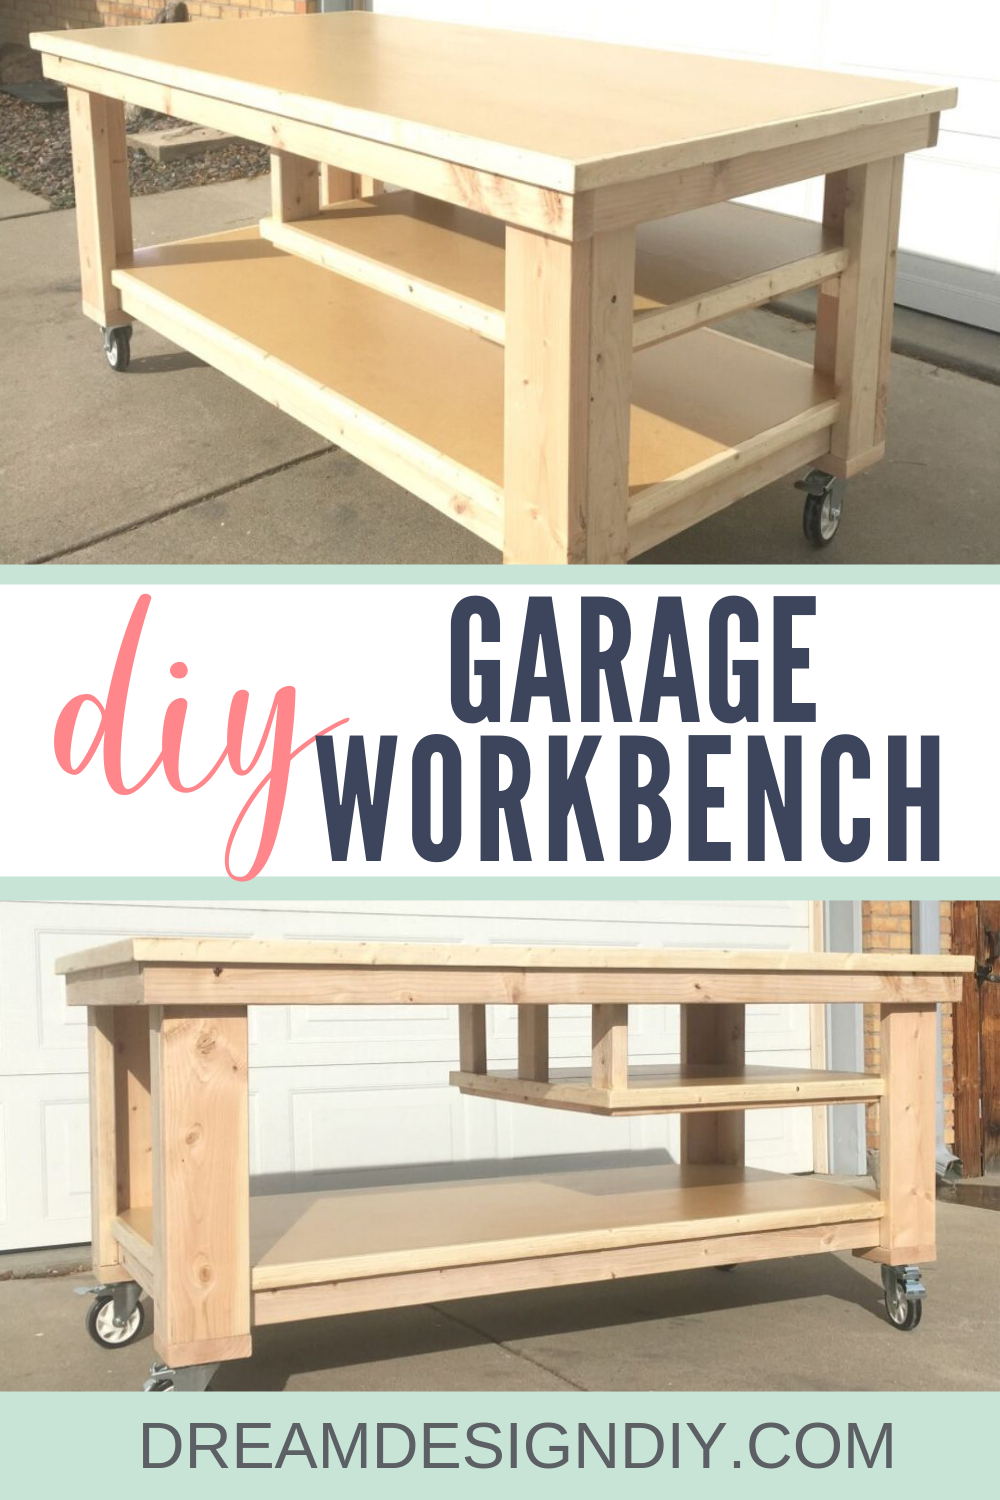 How To Build The Ultimate Diy Garage Workbench Free Plans